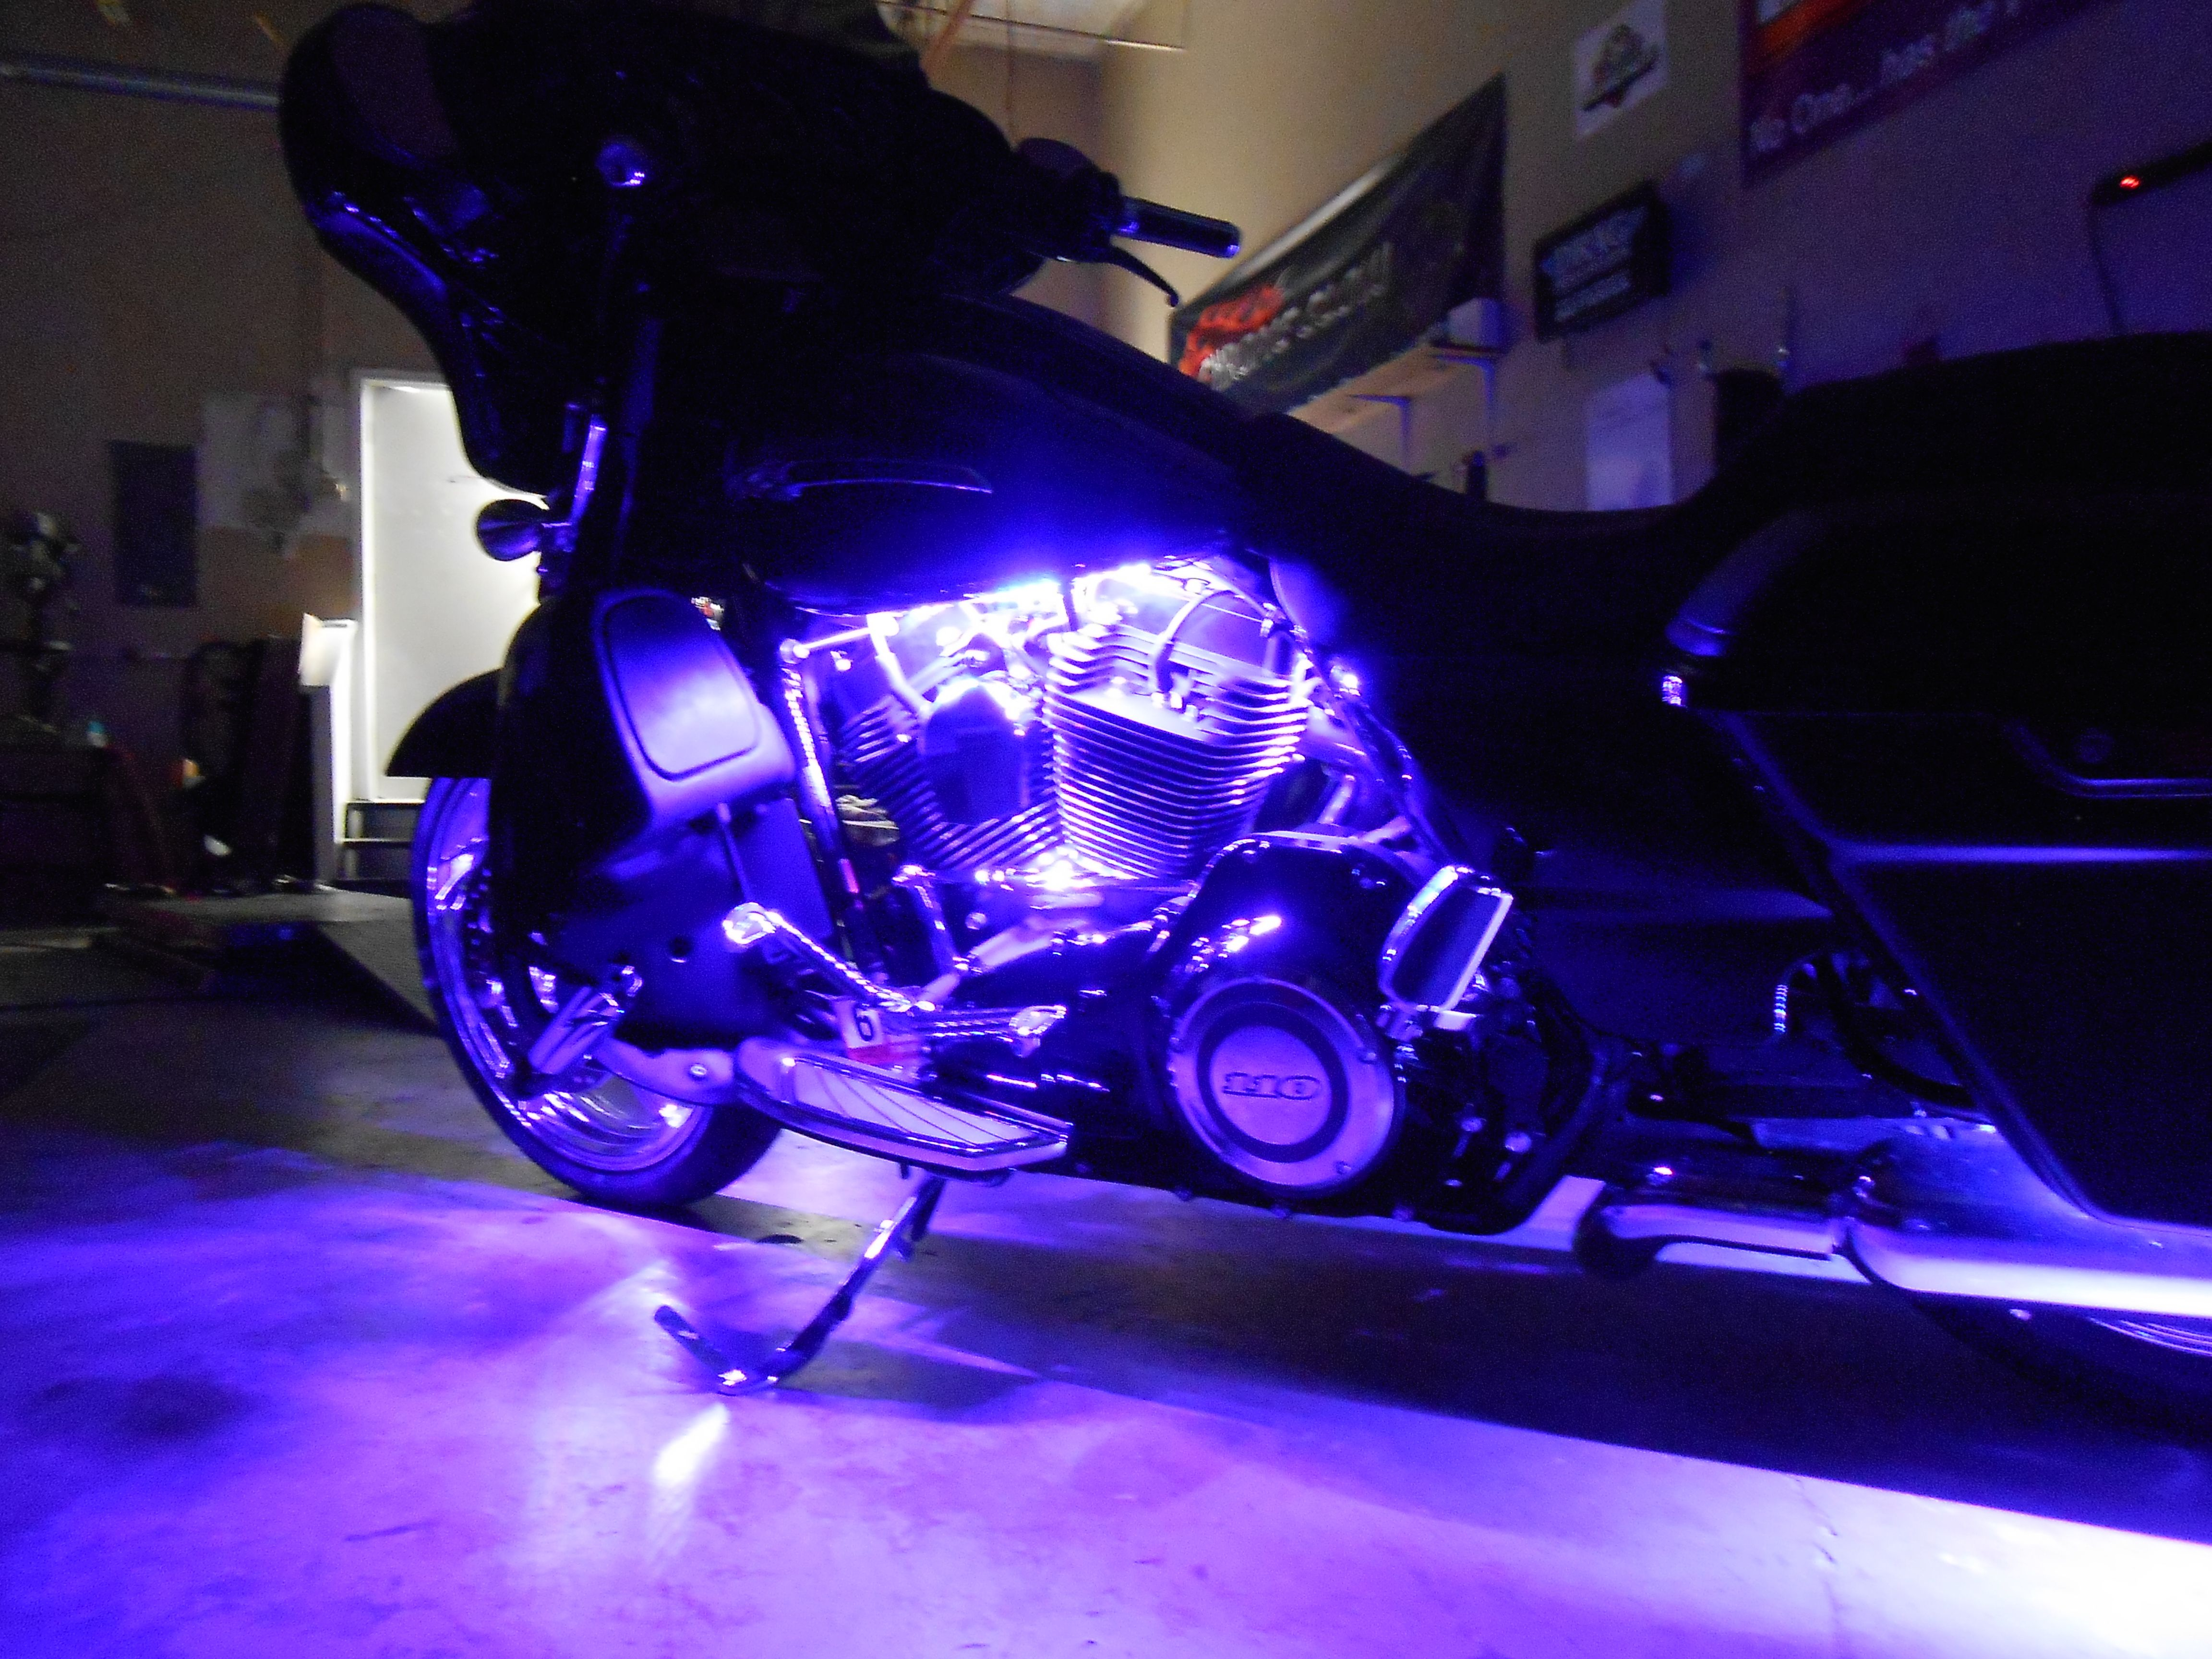 joe lights floridamotorcycle india reviews accent amazing jacket emergency home motorcycle light lightsmotorcycle feature led captivating track lighting